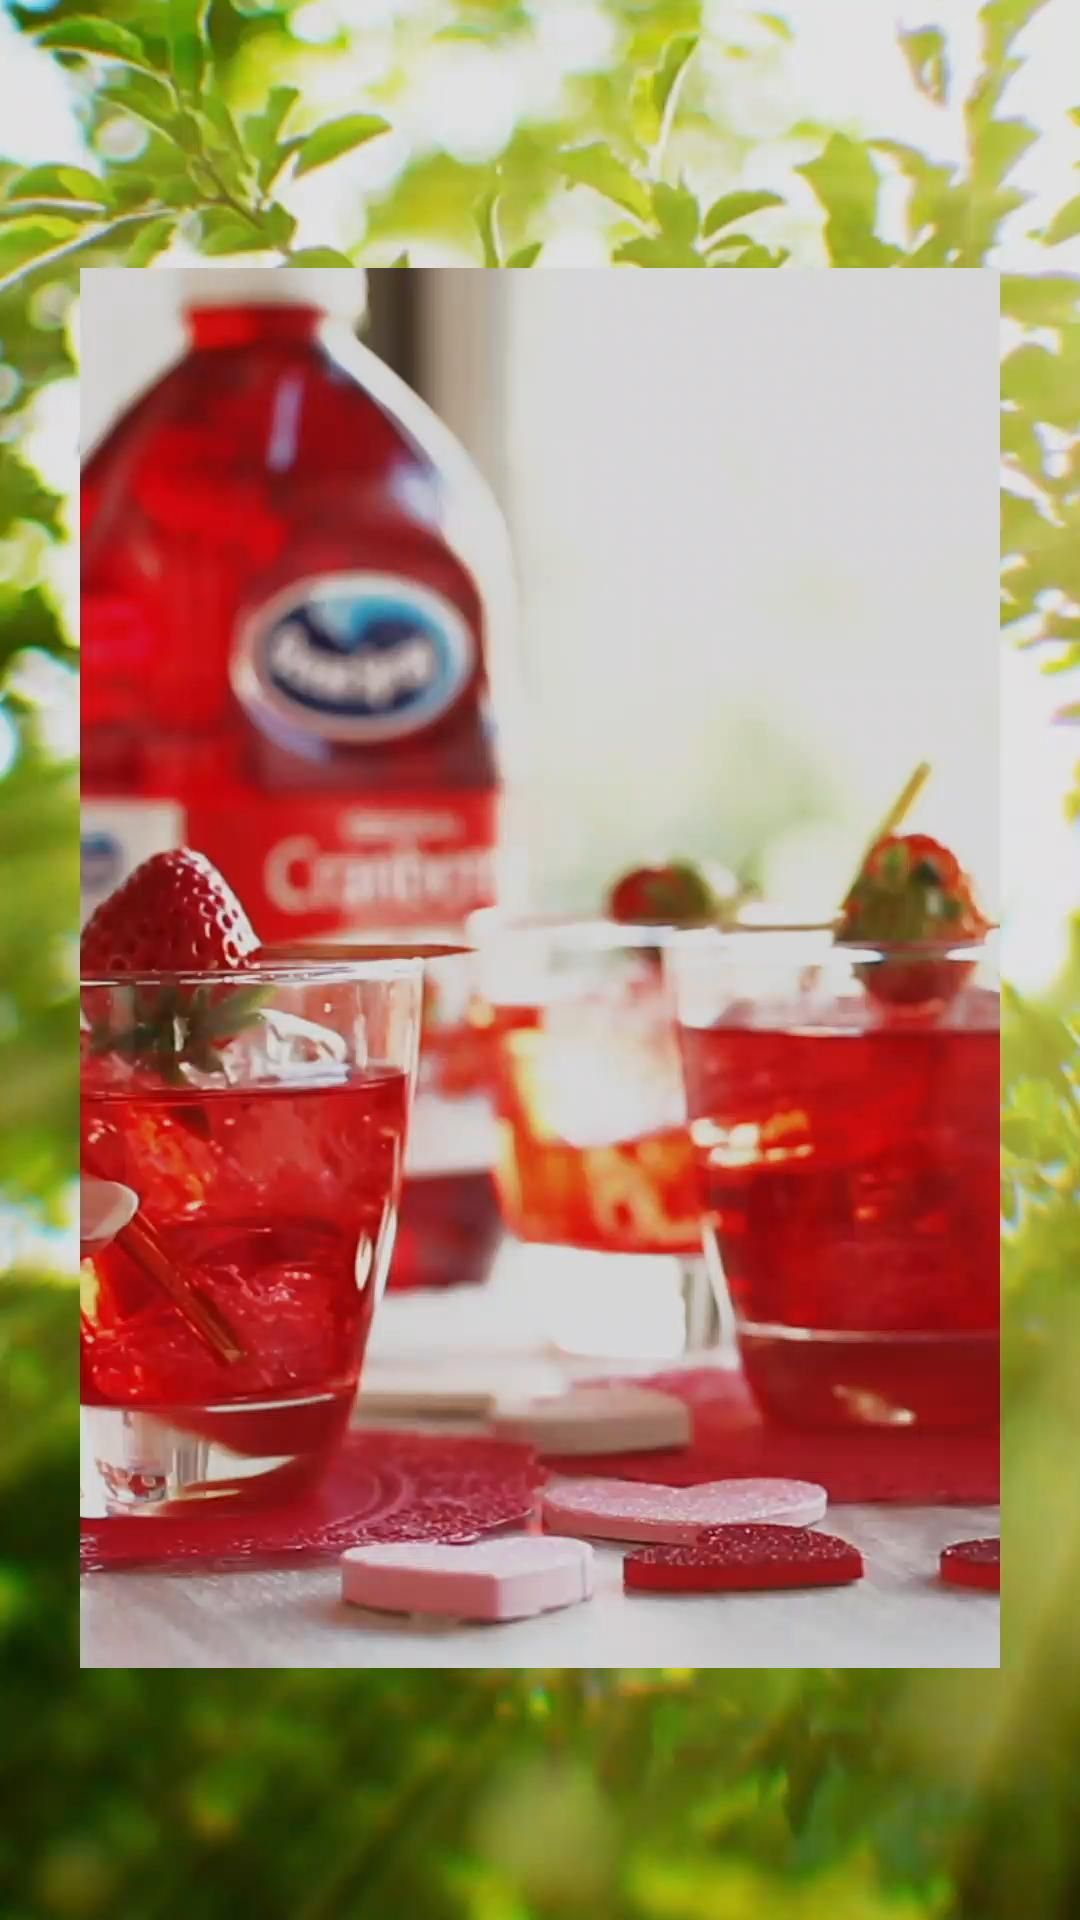 Summer is here–and so is Ocean Spray® X Summer Fridays. Join us all summer long for tips on how to #SummerFriday like a pro and make the most of every summer weekend.